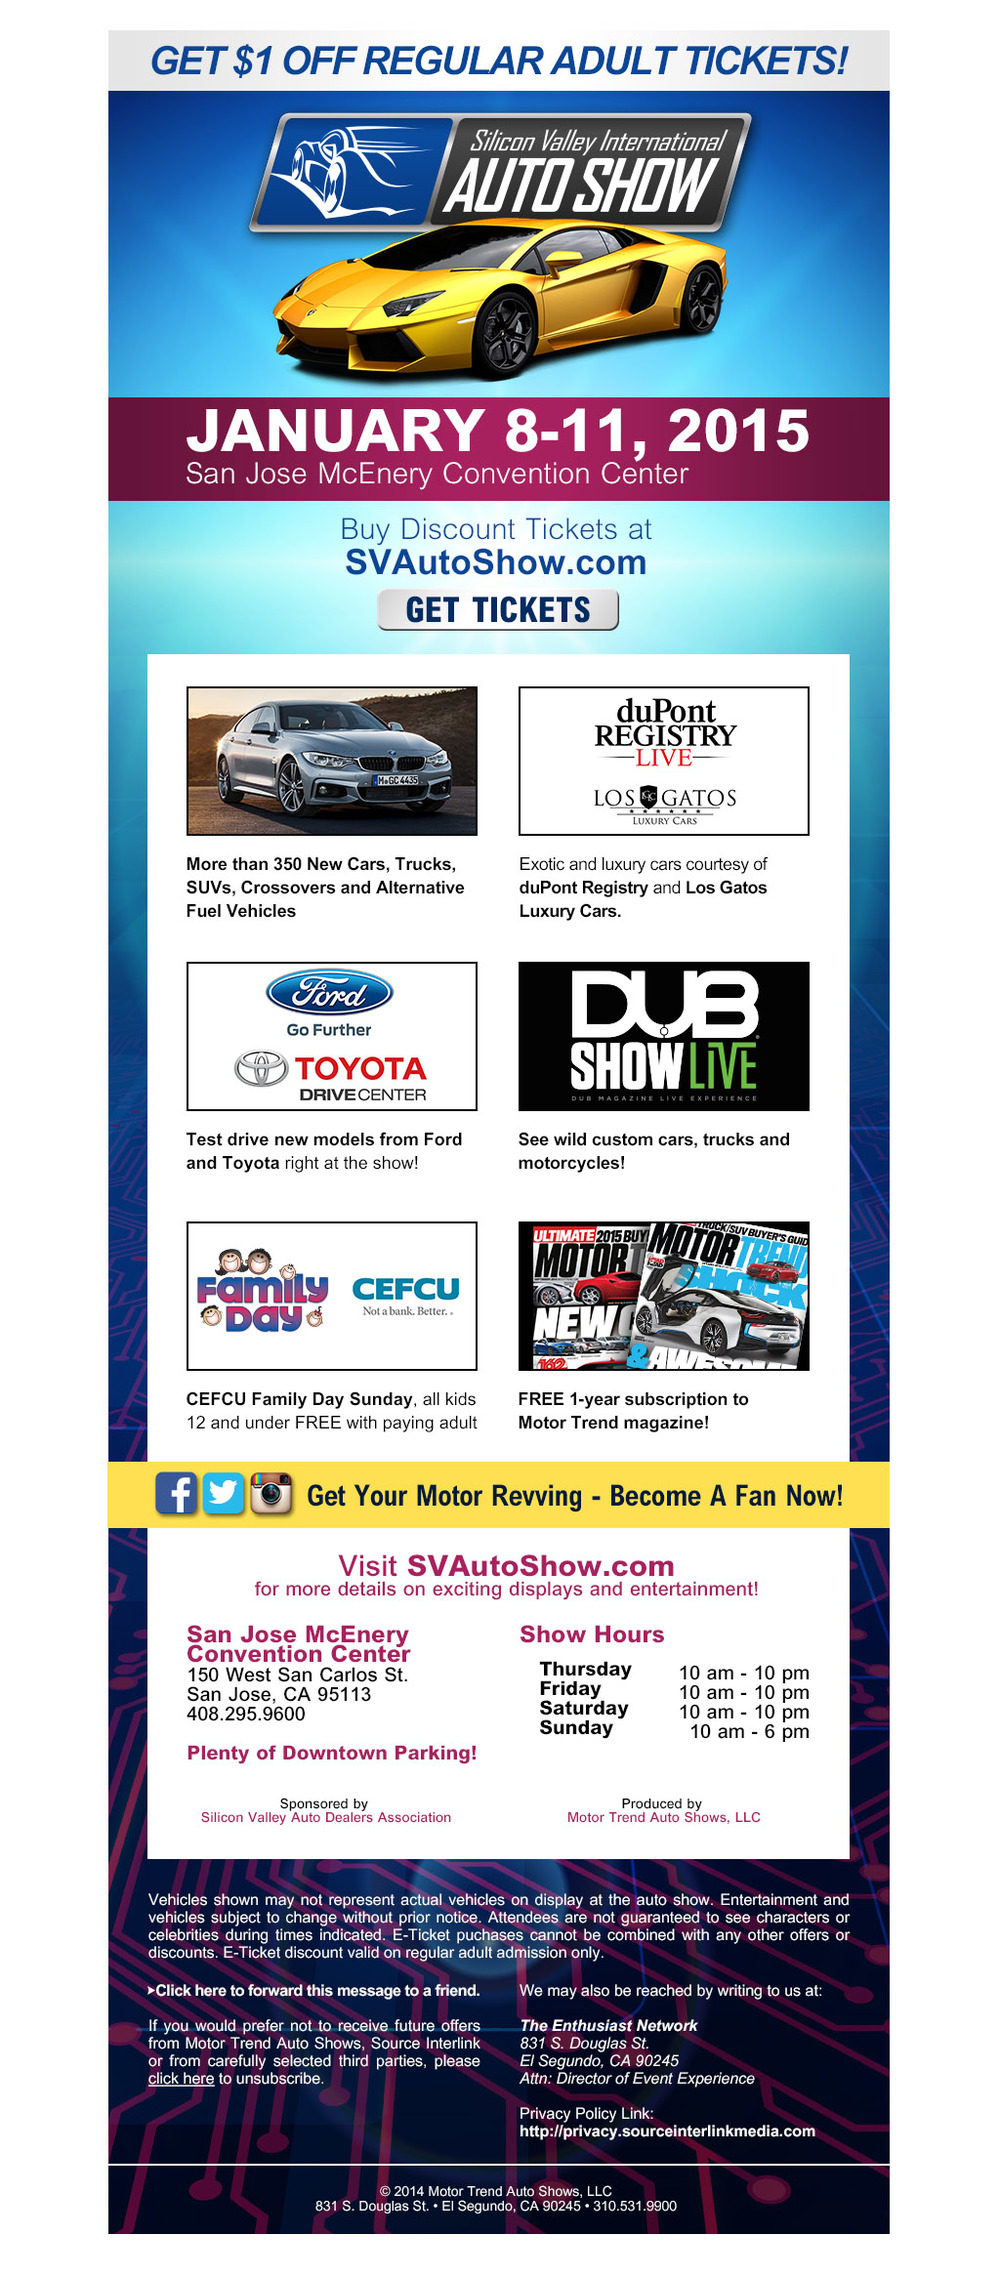 Silicon Valley International Auto Show Eblast